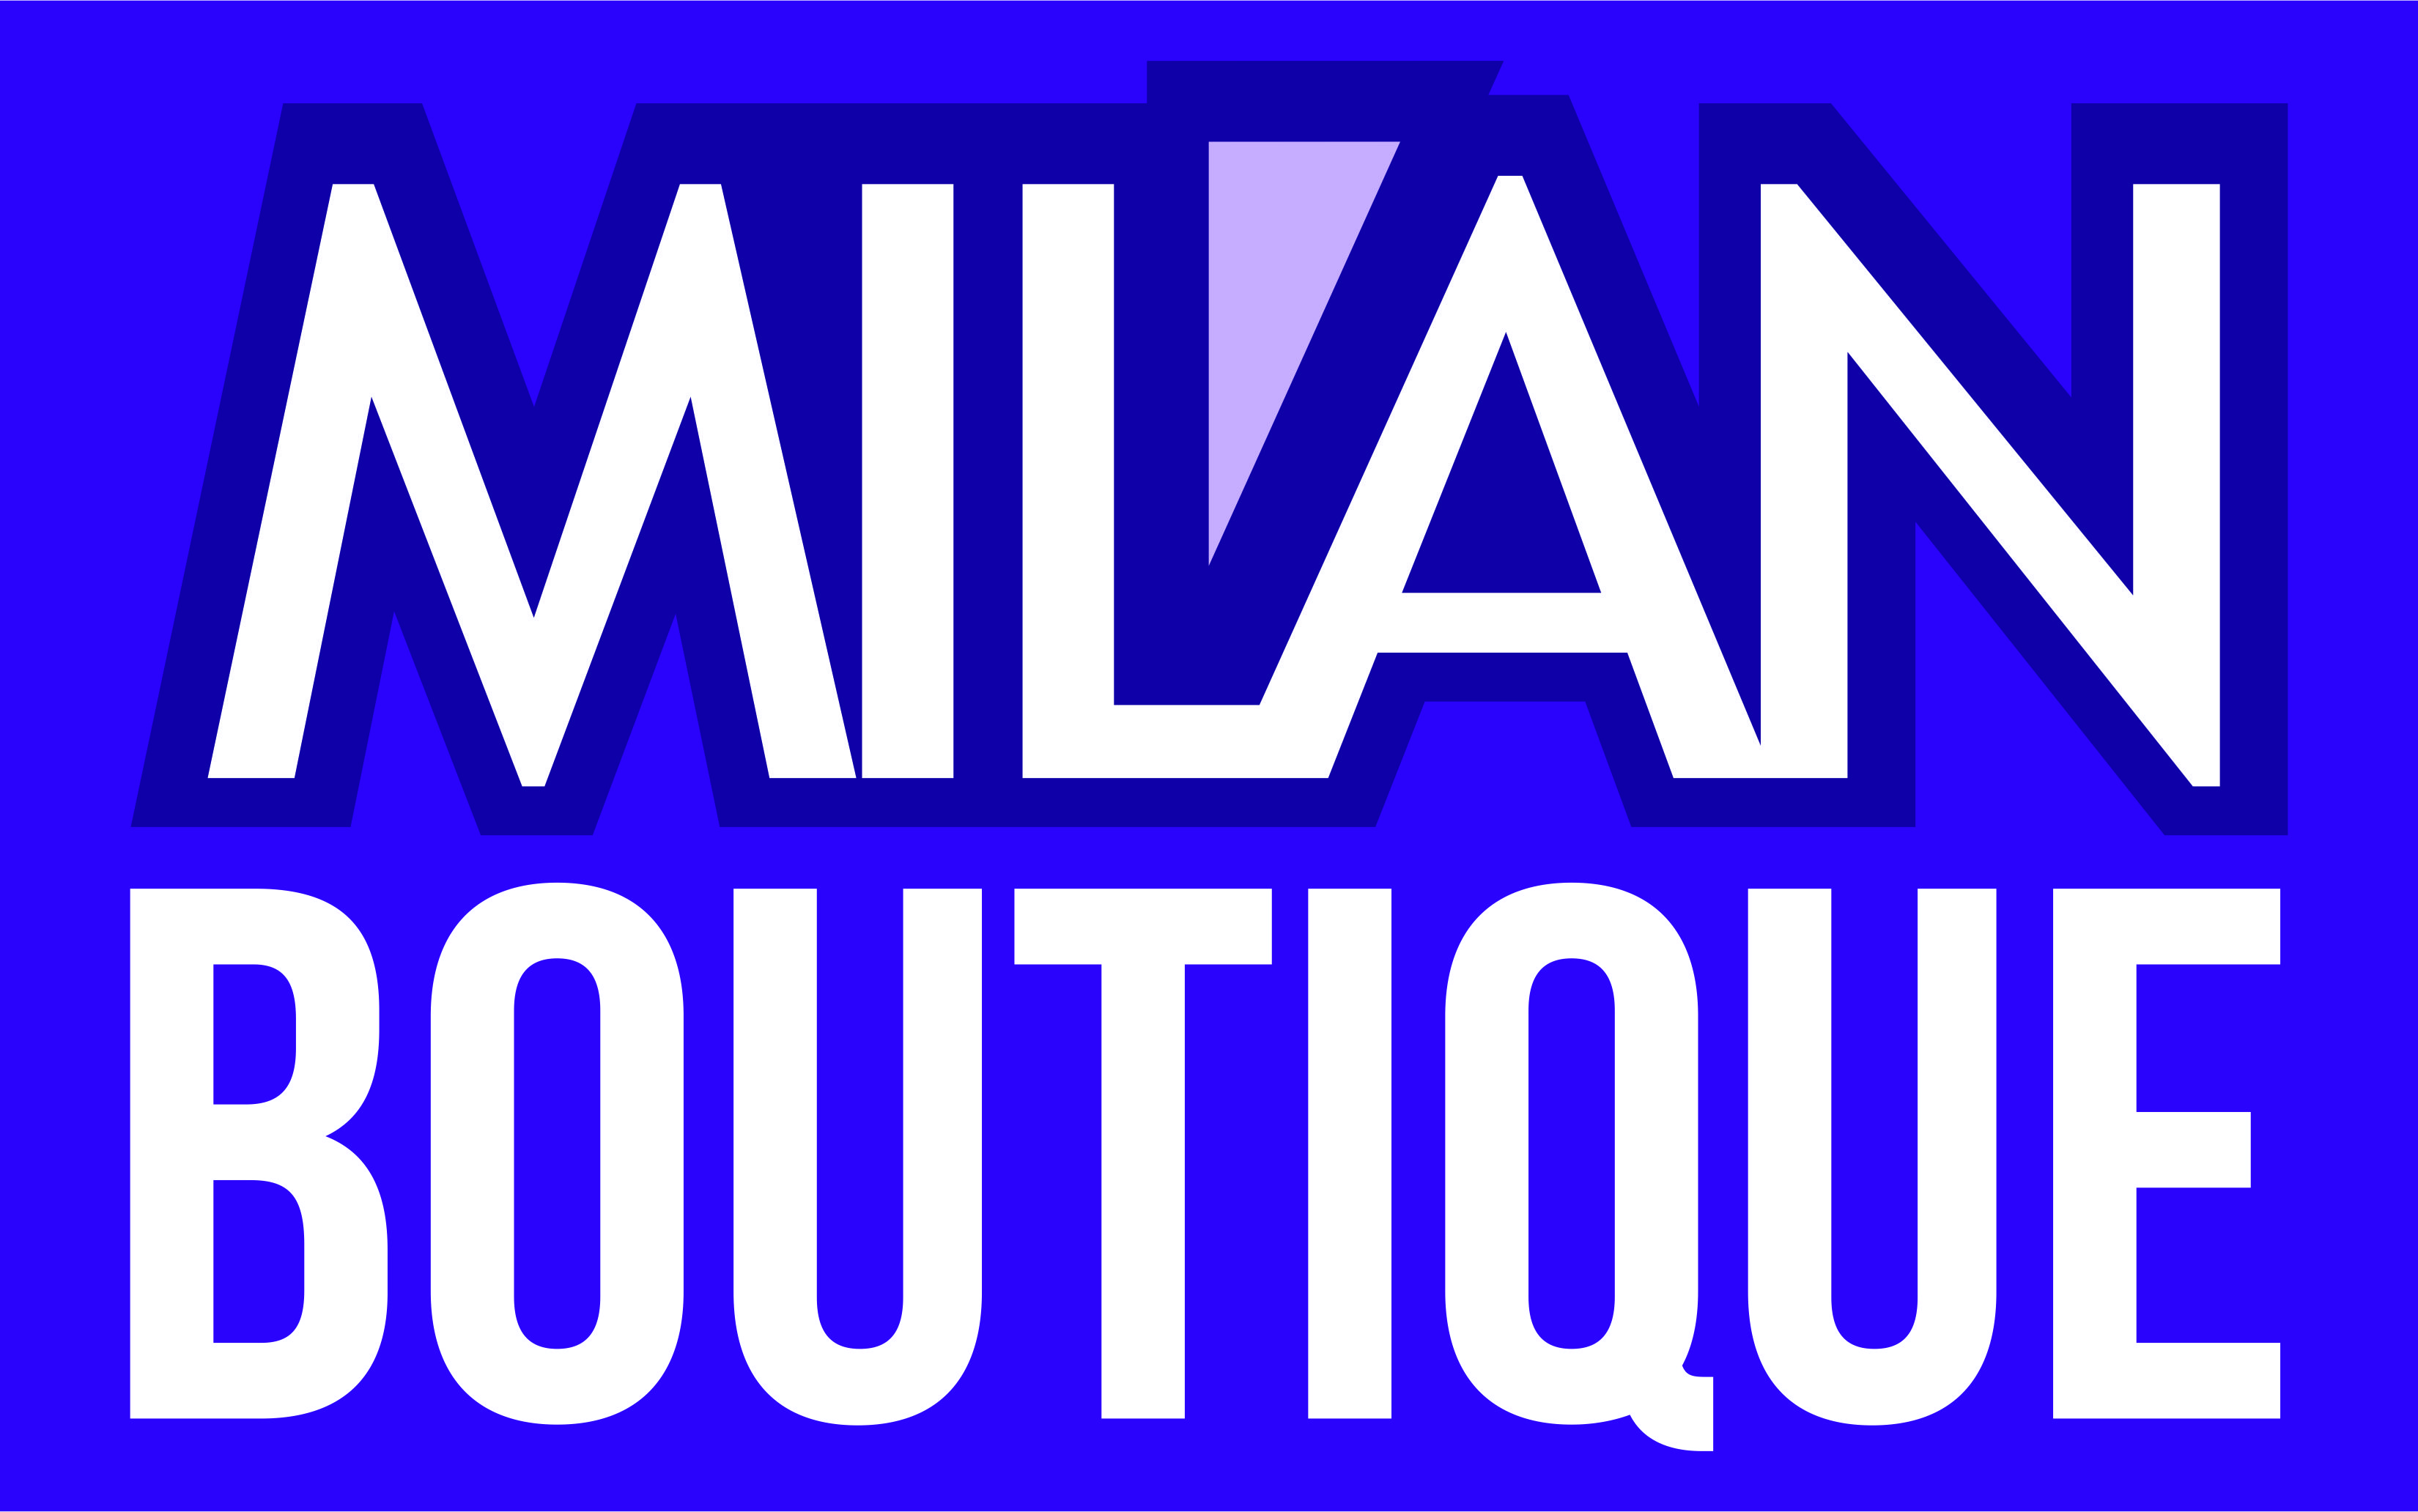 Milan Boutique